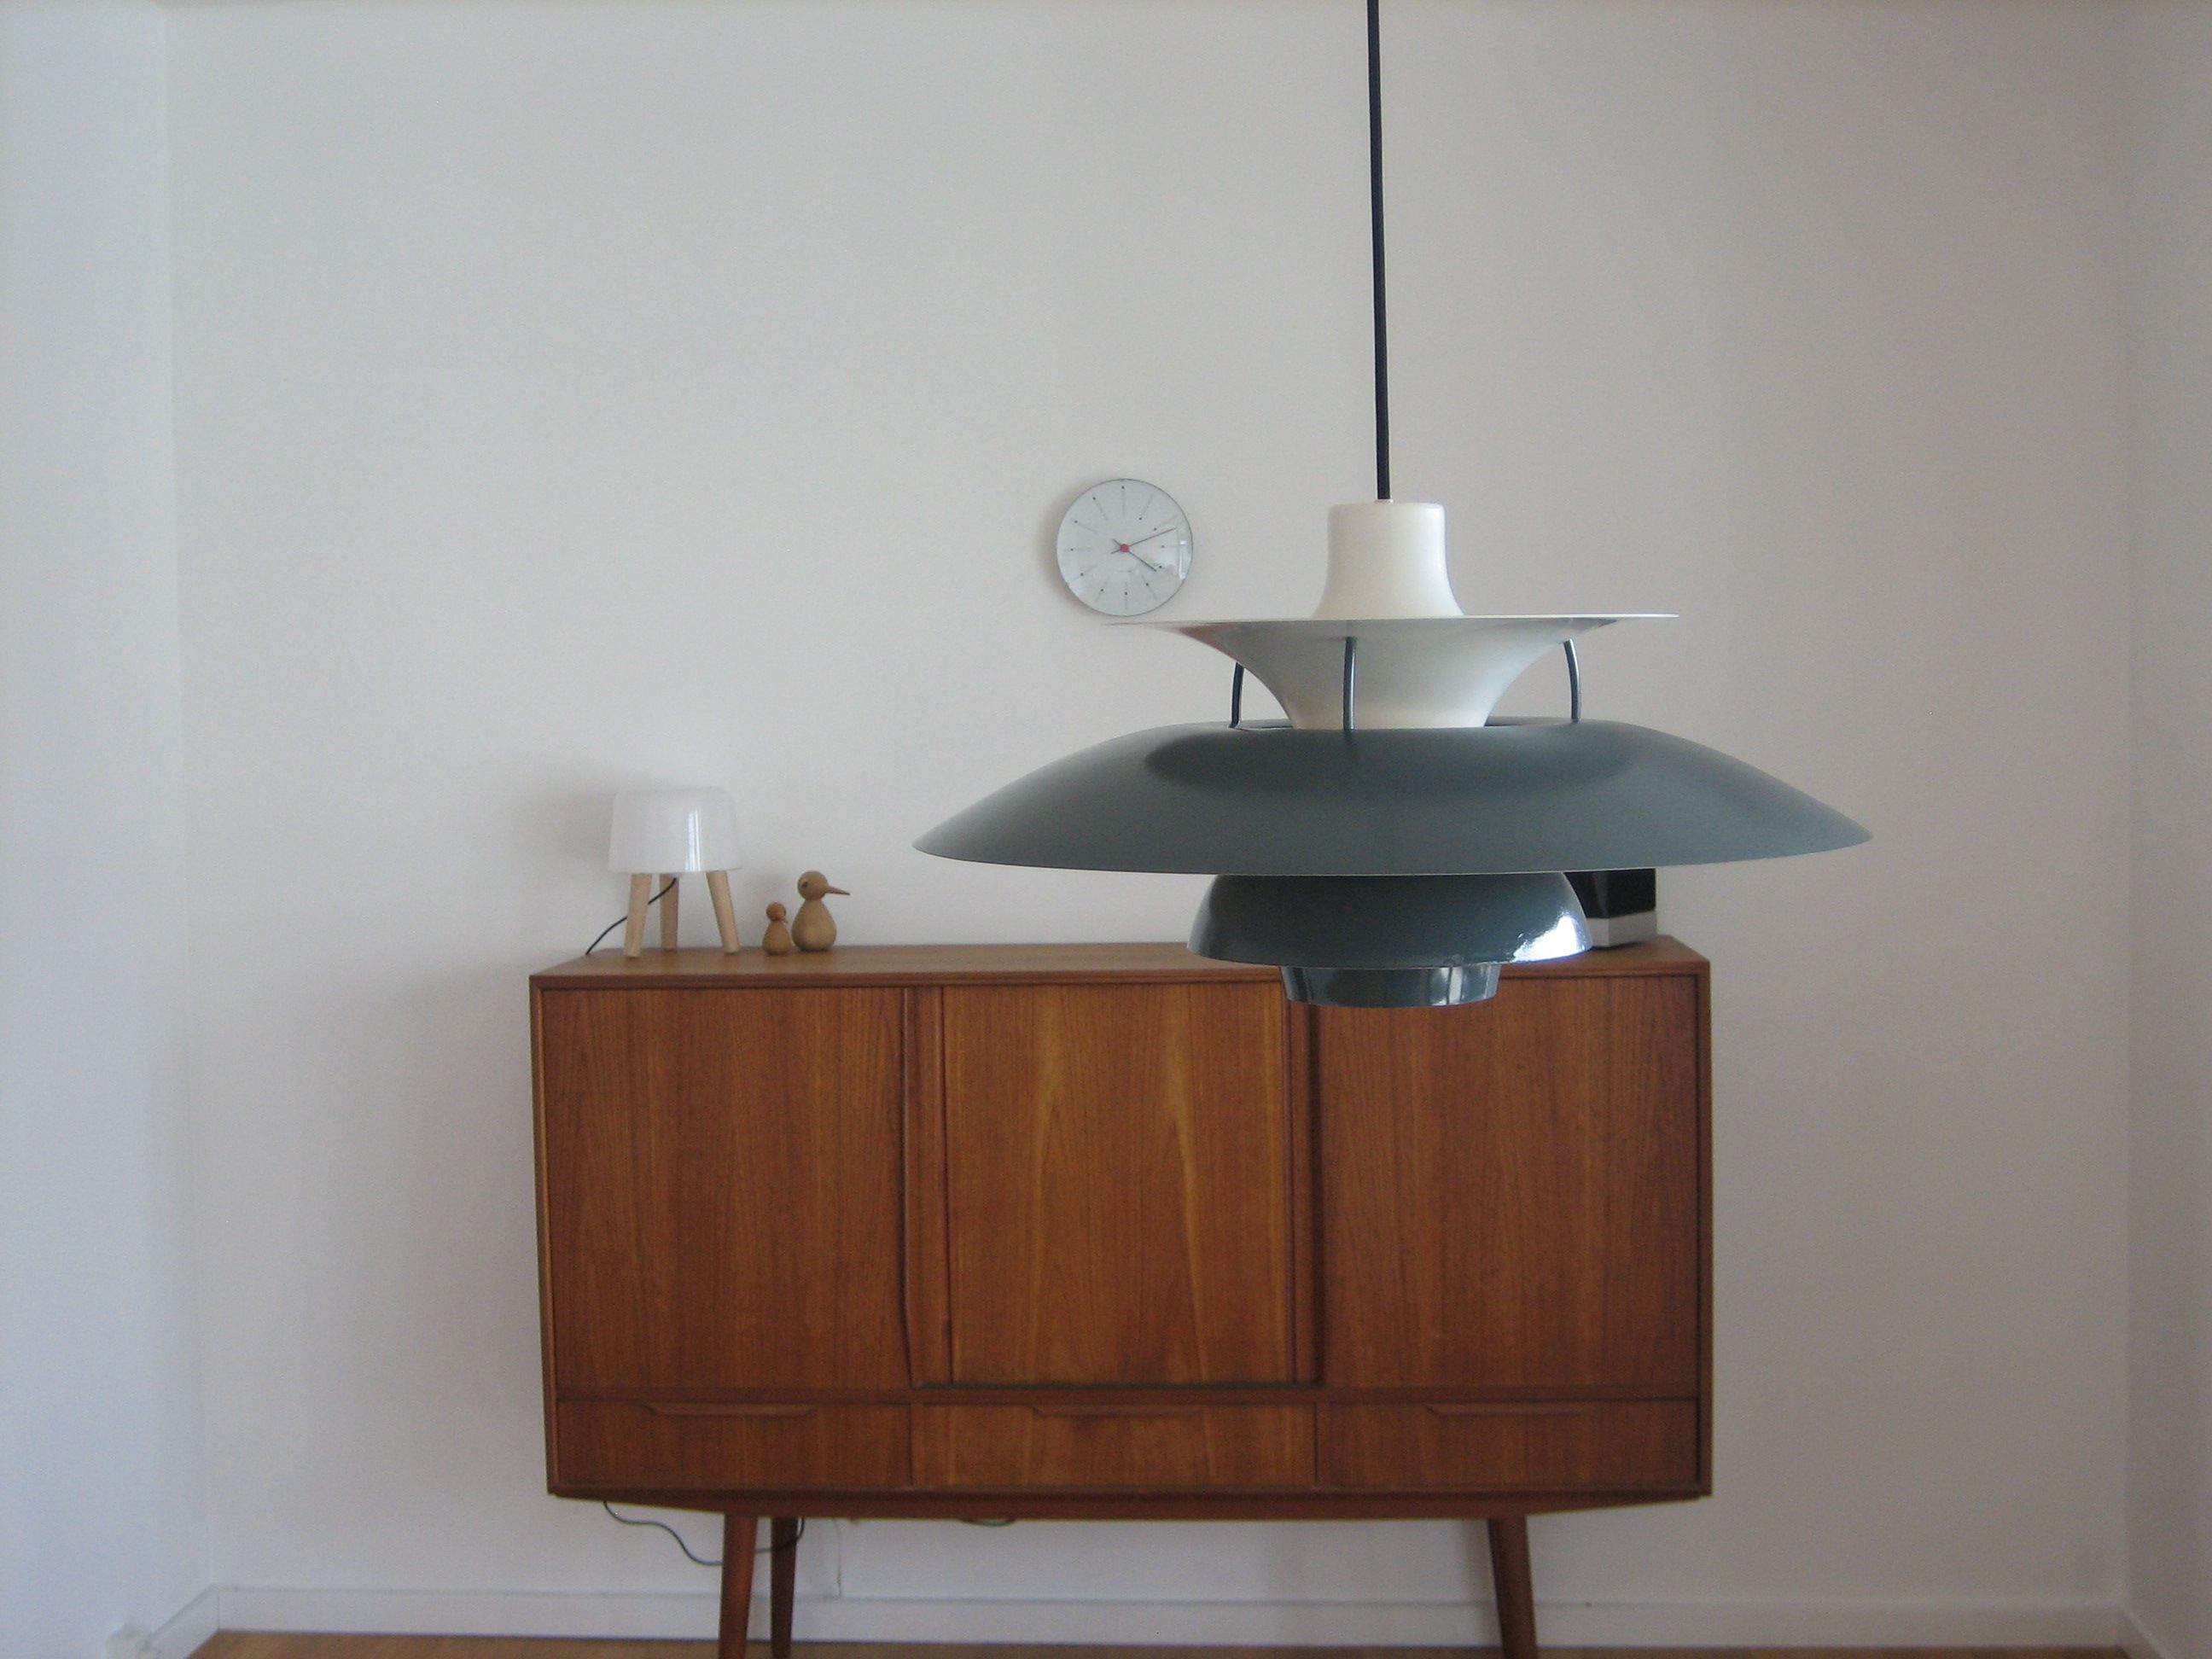 PH 5 lampe | Danish, Mid century and Modern